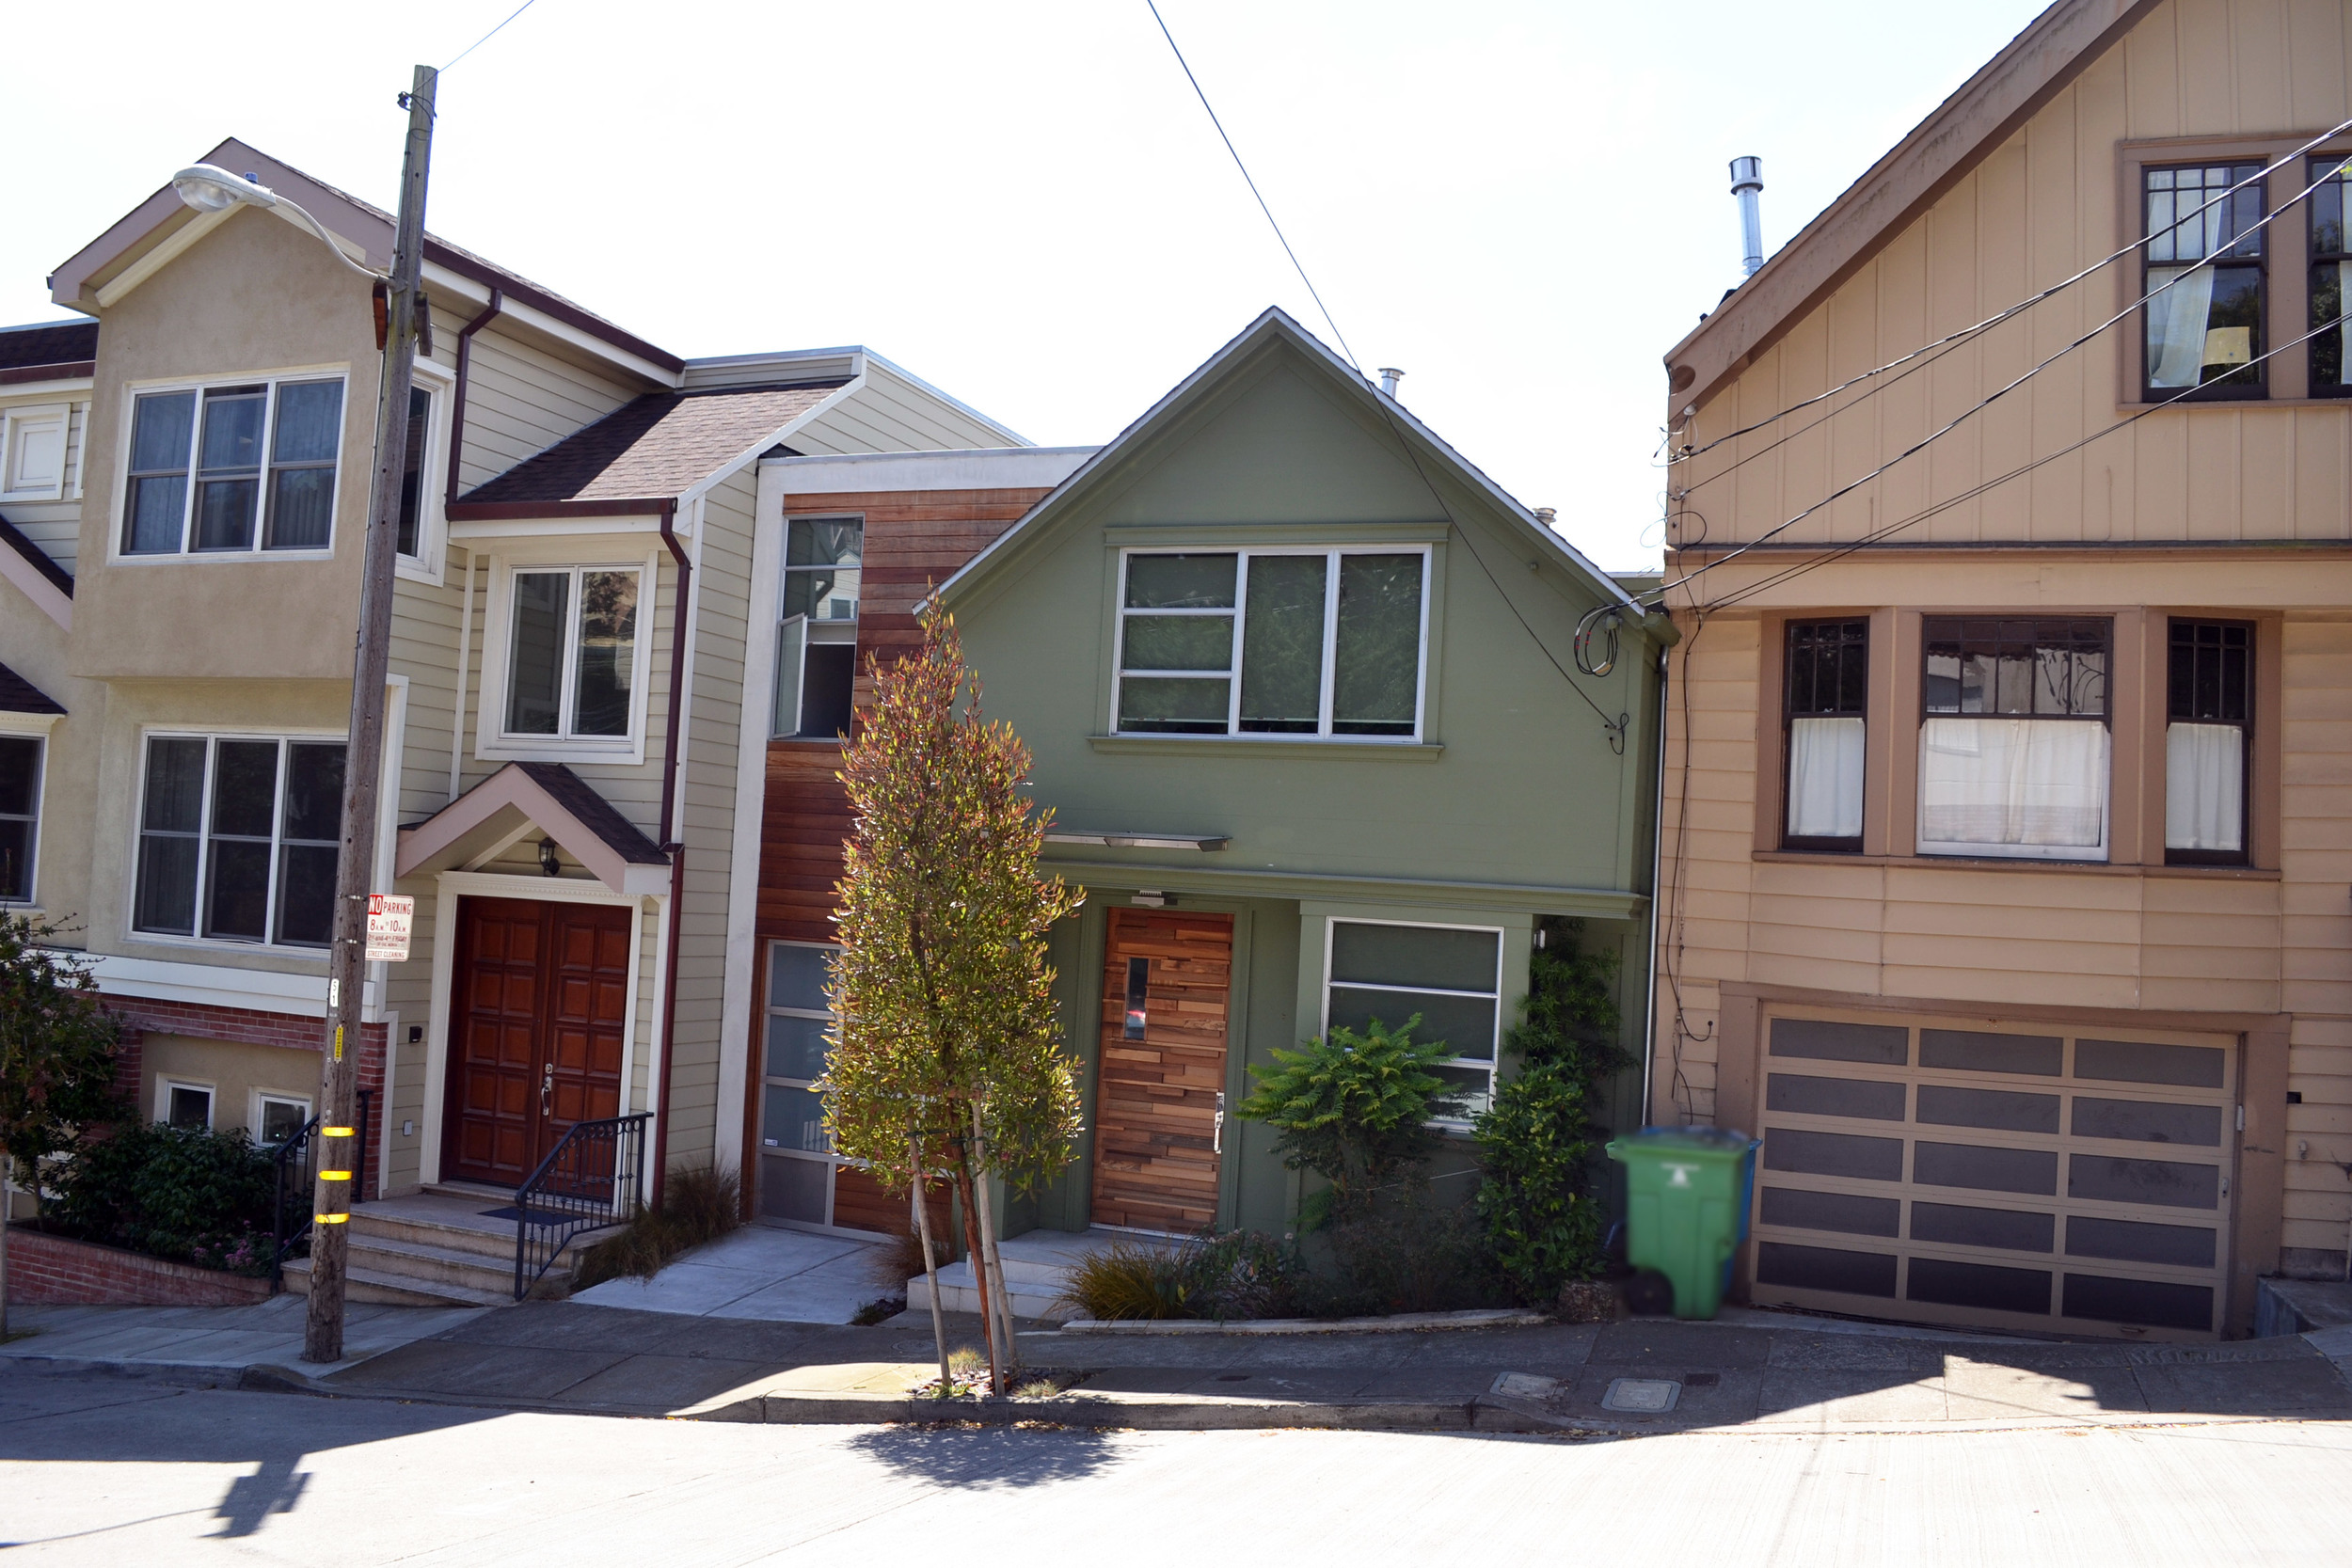 Noe Valley, San Francisco  $1.1M acquisition and construction loan for spec home. Property sold for $2.3M upon completion.